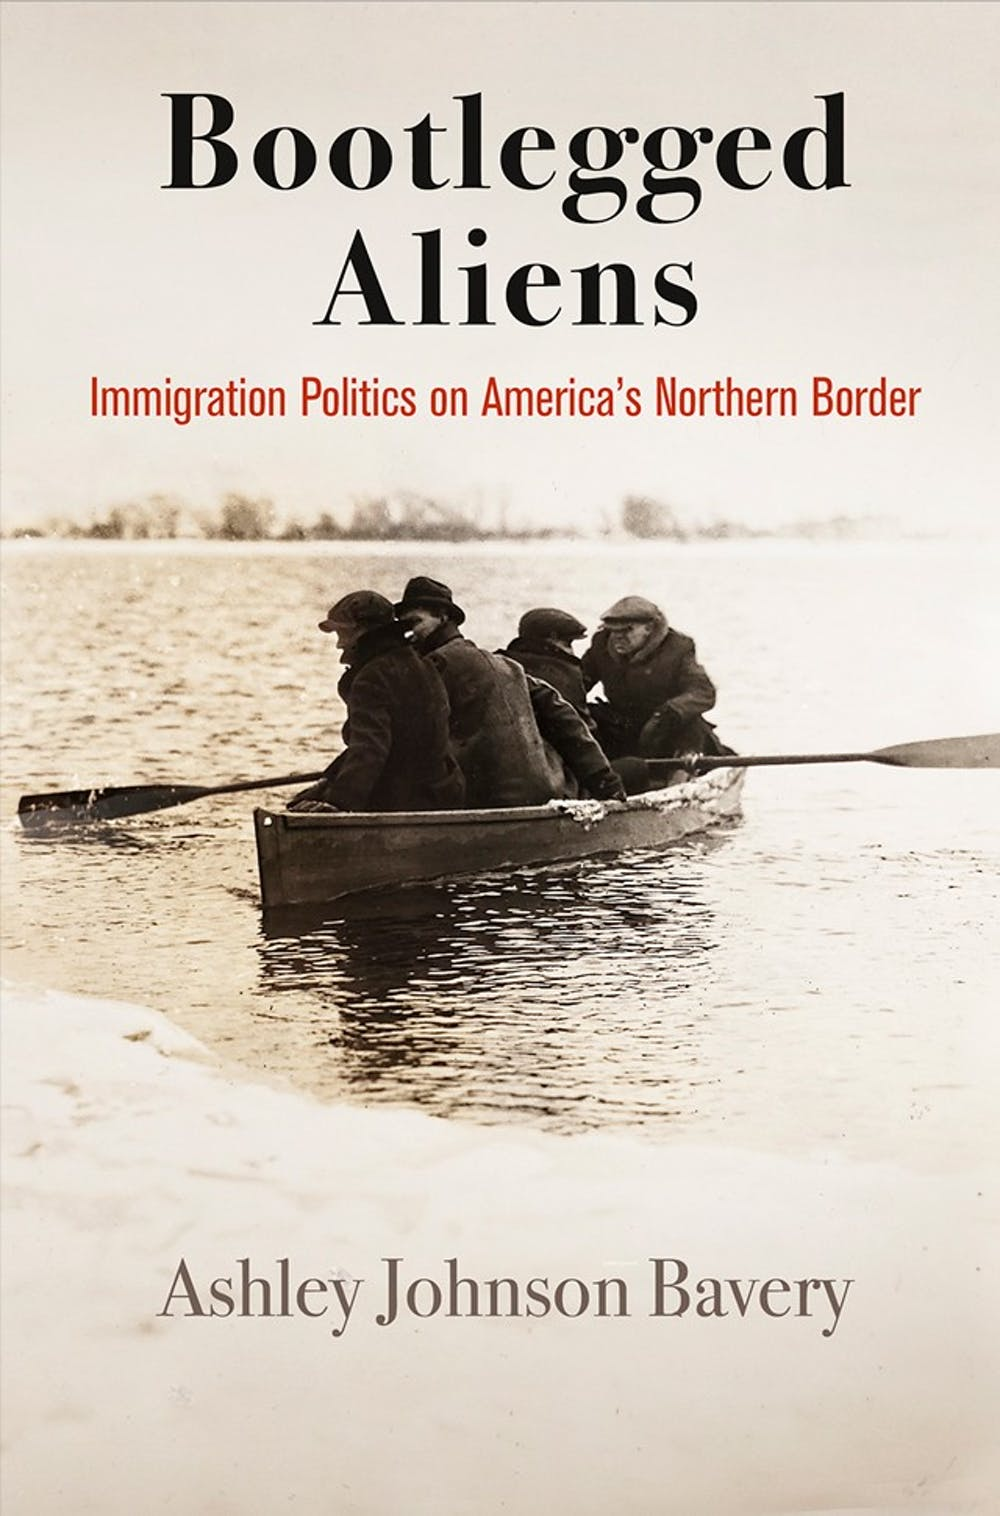 Eastern Michigan University history professor publishes new book on undocumented immigration in Detroit